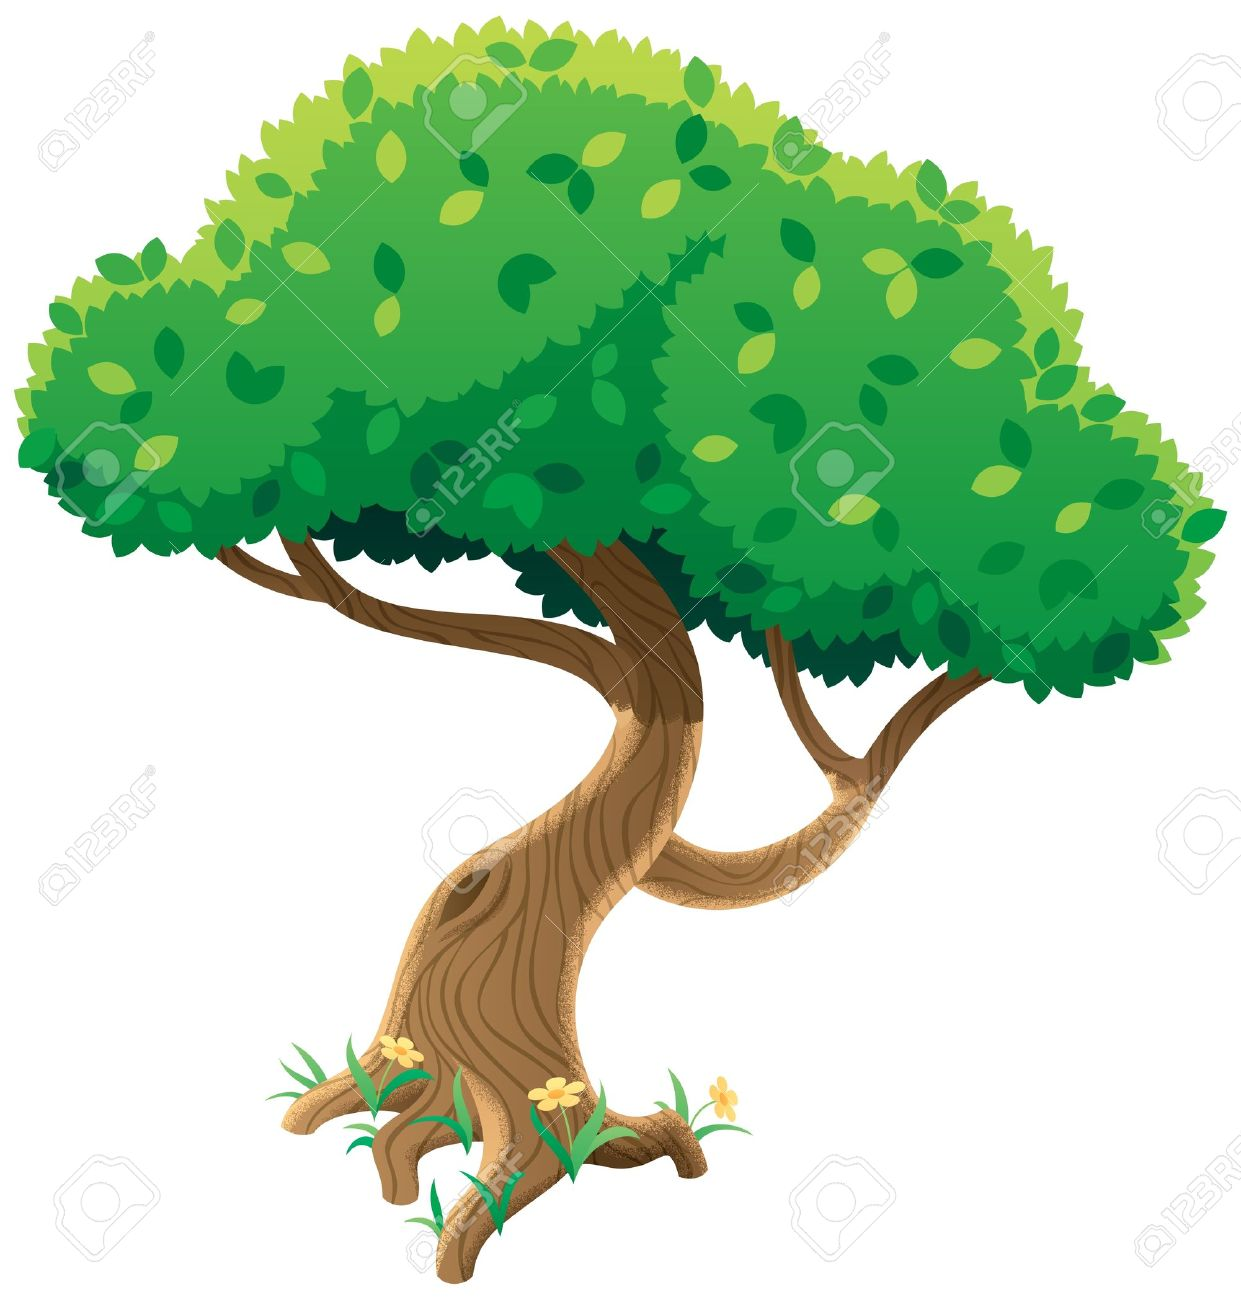 Cartoon Tree Over White Background No Transparency Used Basic Linear Gradients